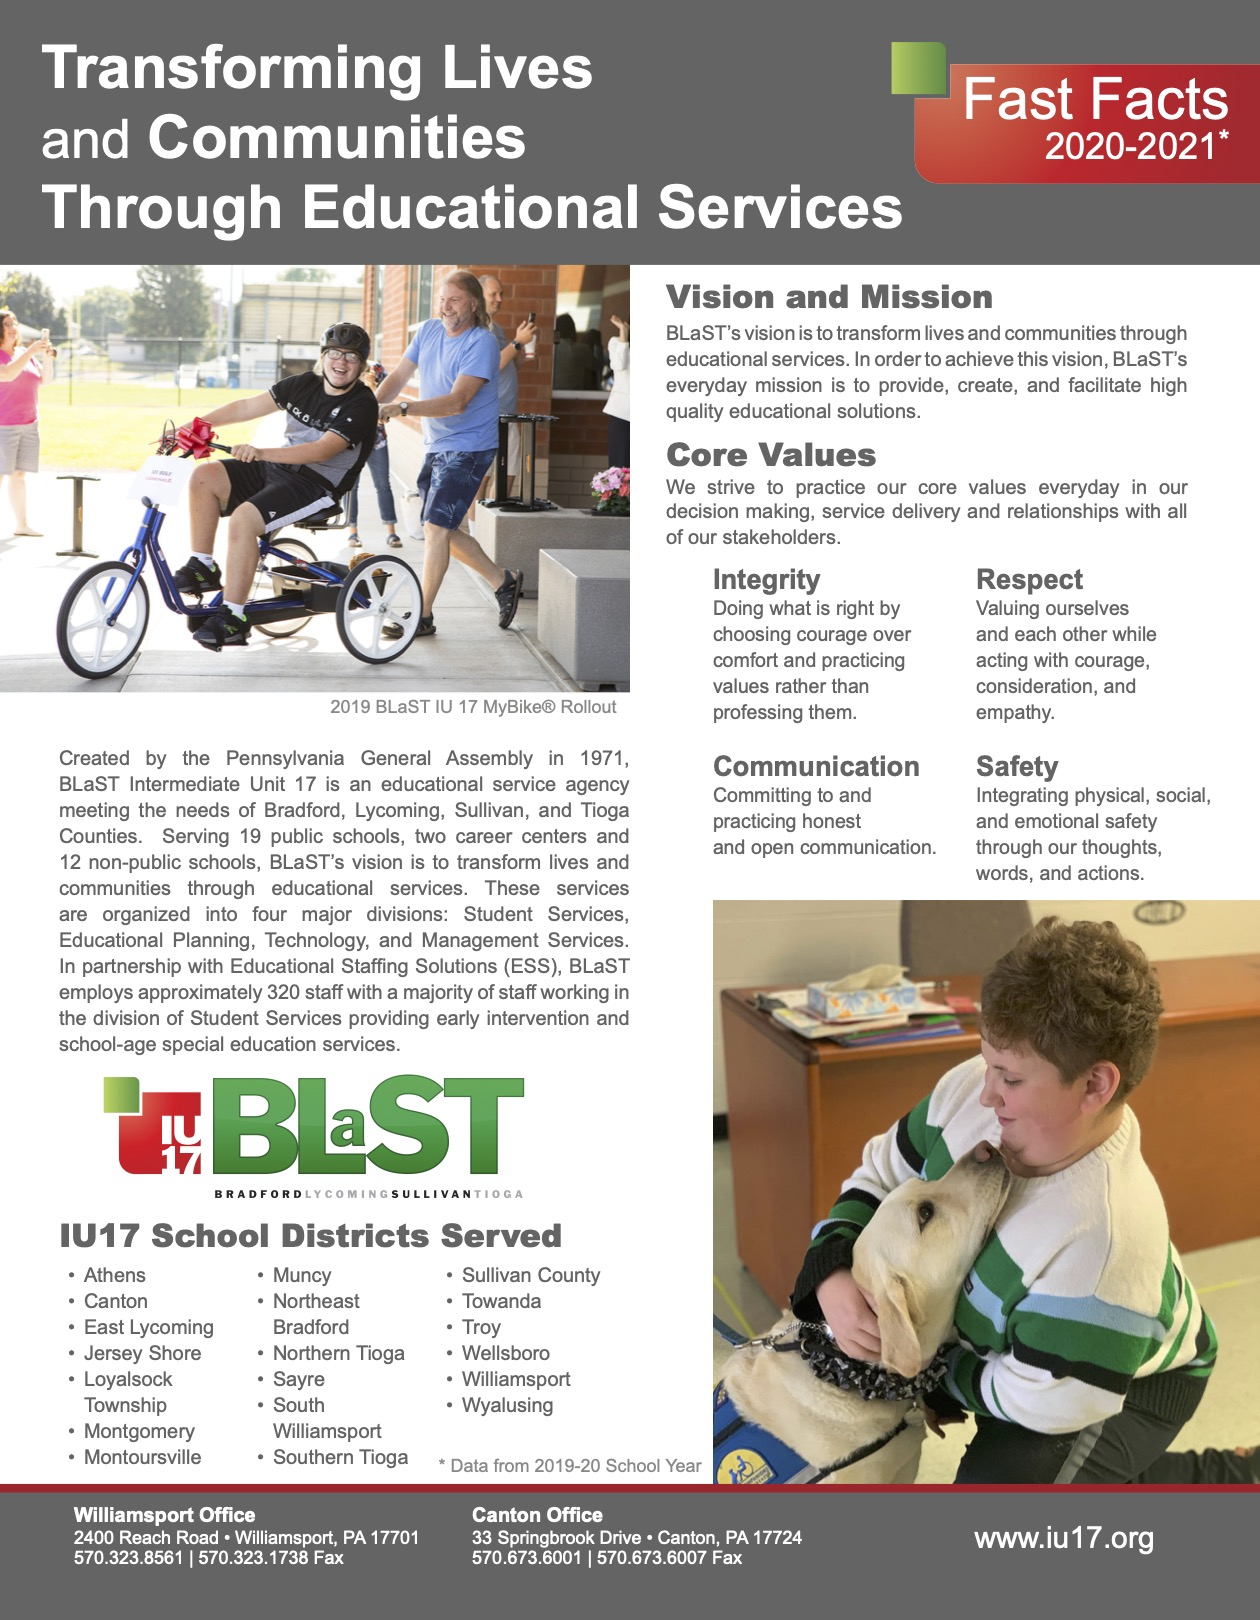 Transforming Lives and Communities Through Educational Services